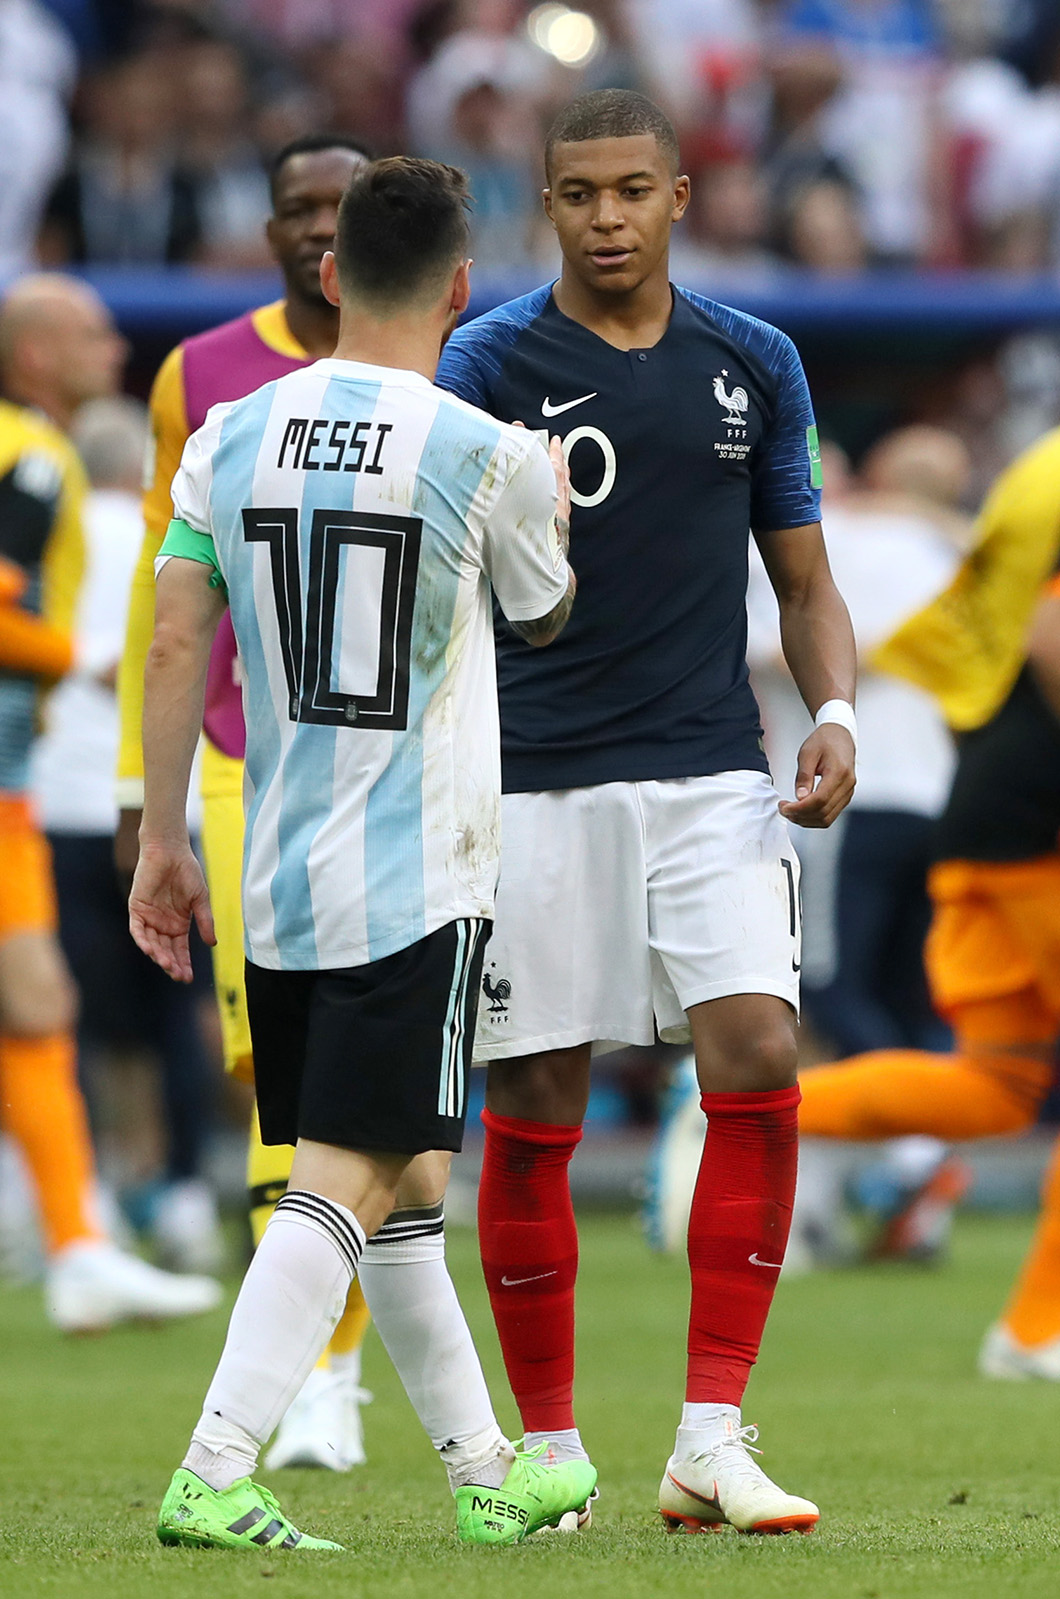 Mbappe and Messi at Russian World Cup 2018